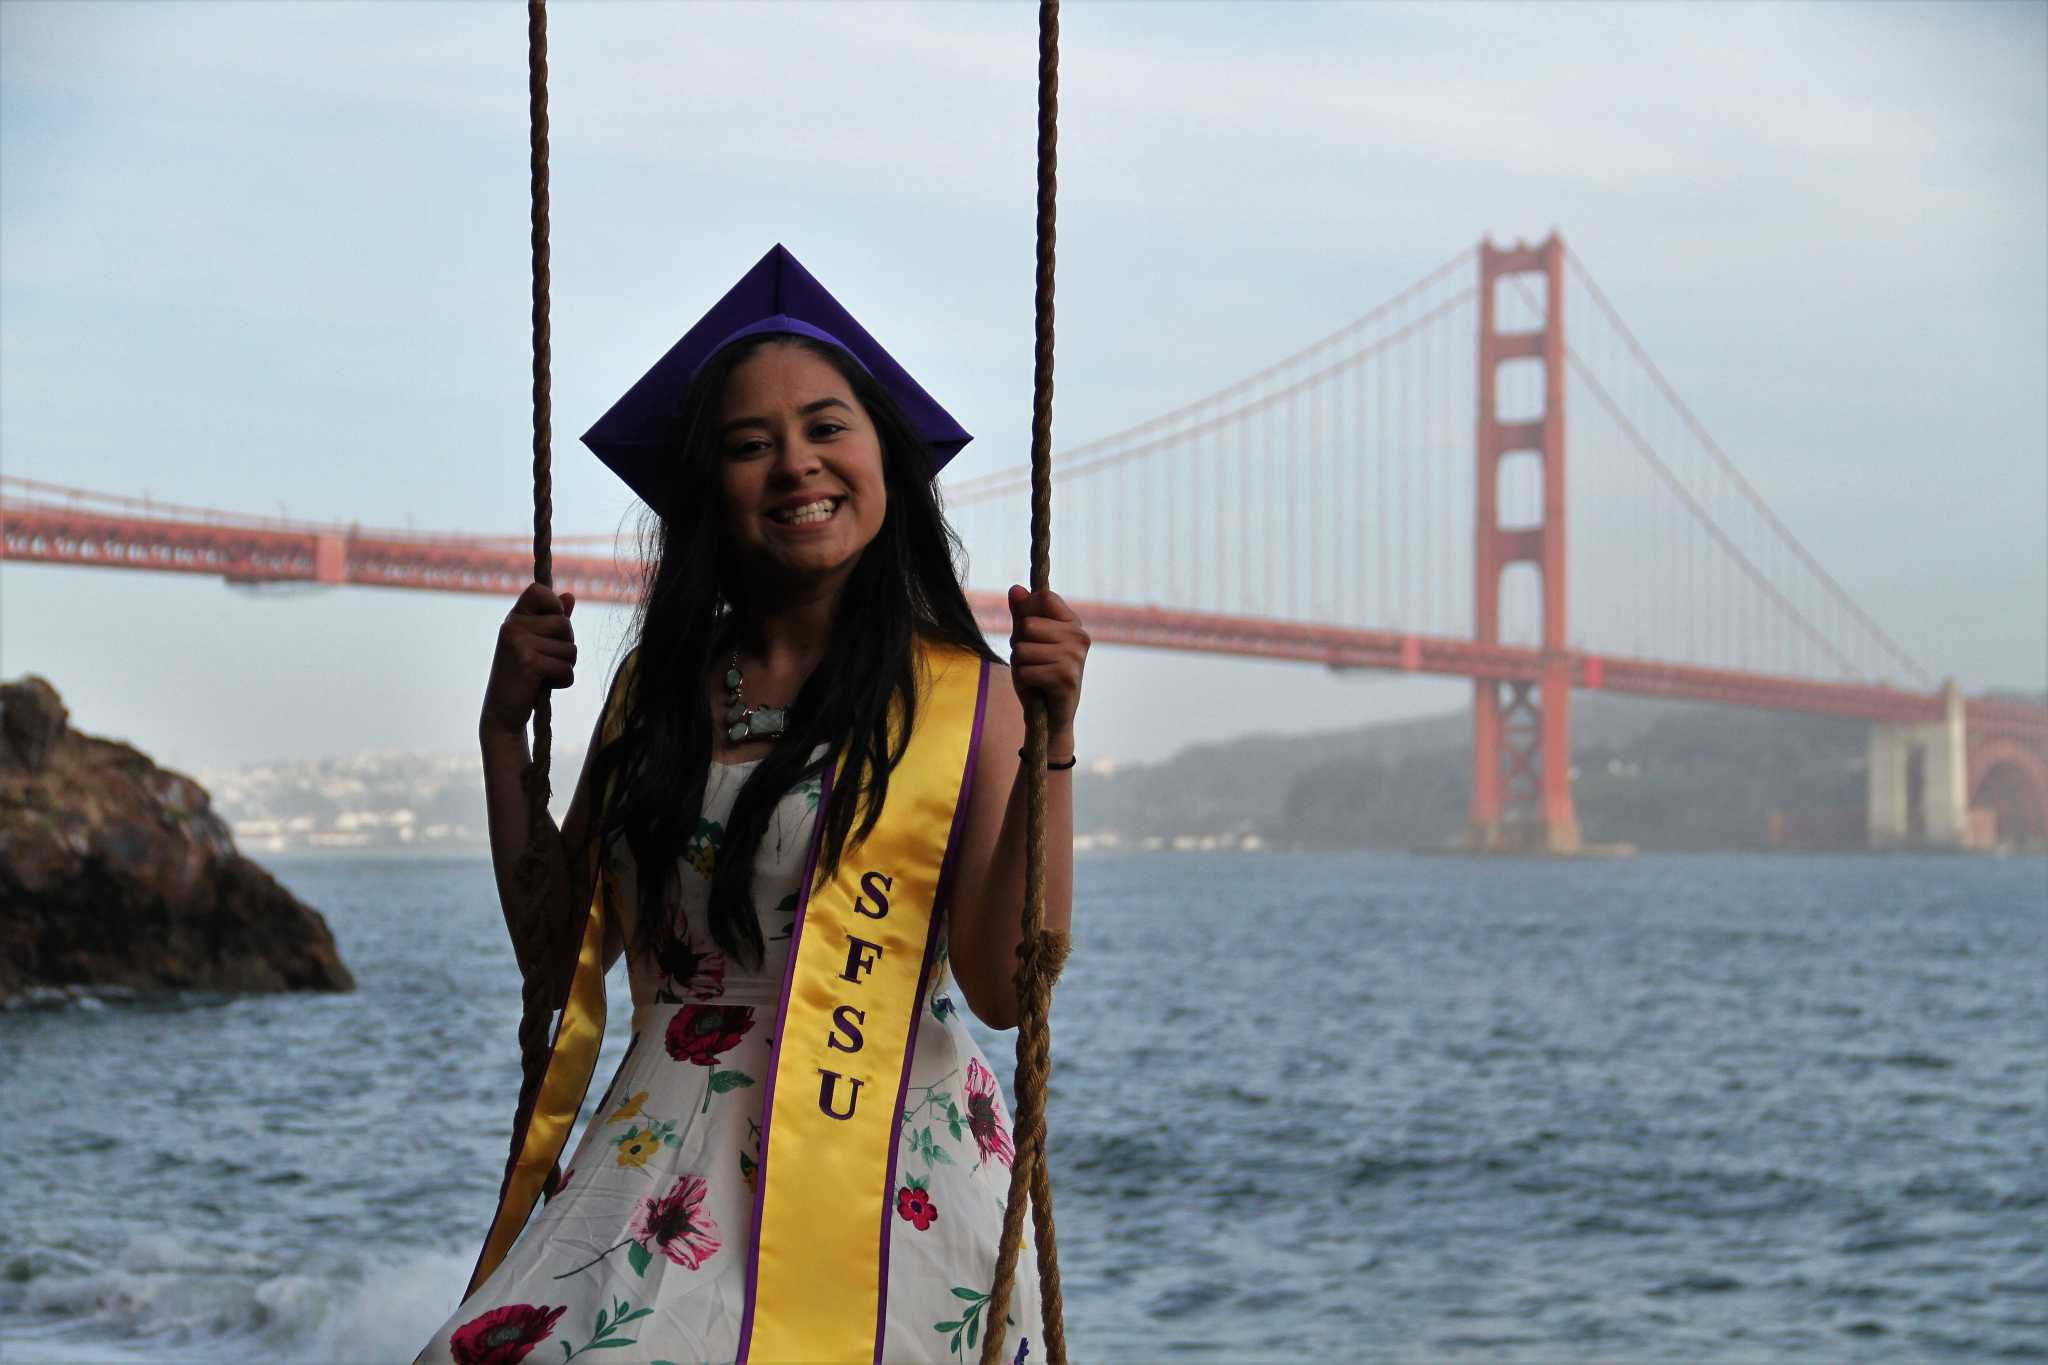 Annie Gonzalez poses for her graduation photos in front of the Golden Gate Bridge (Courtesy of Raul Guerrero)